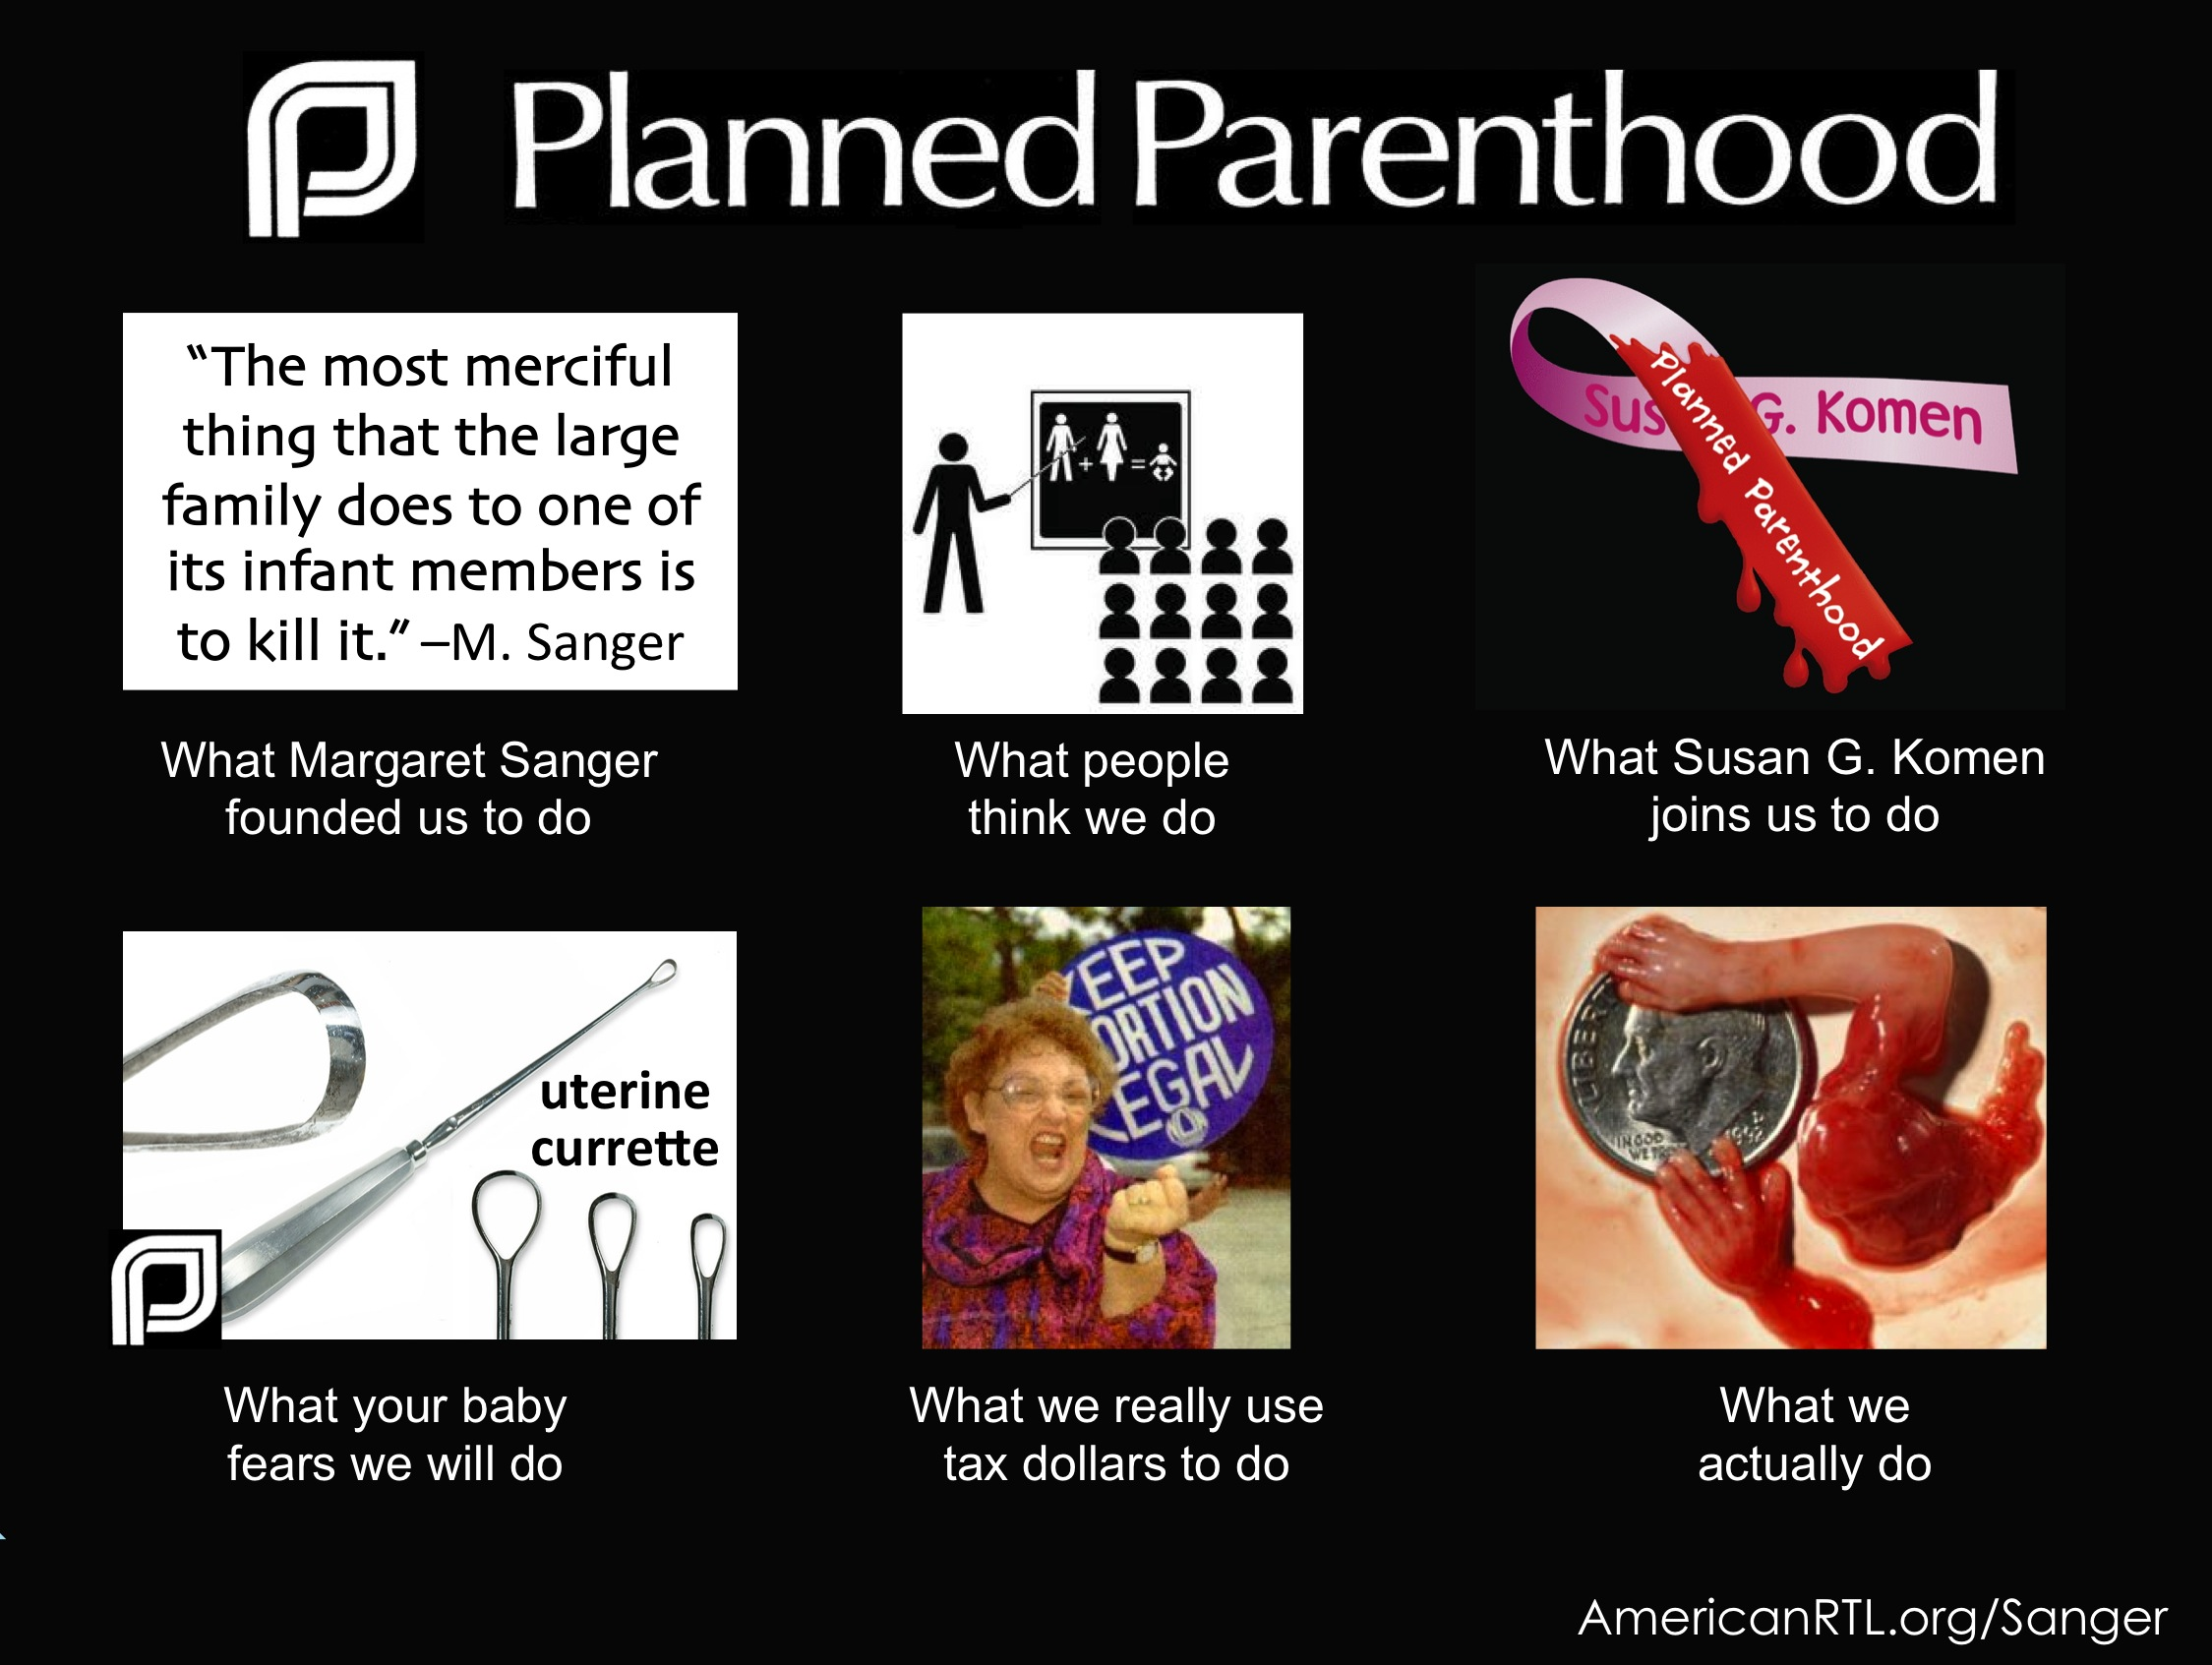 Meme of Planned Parenthood: What we really do.